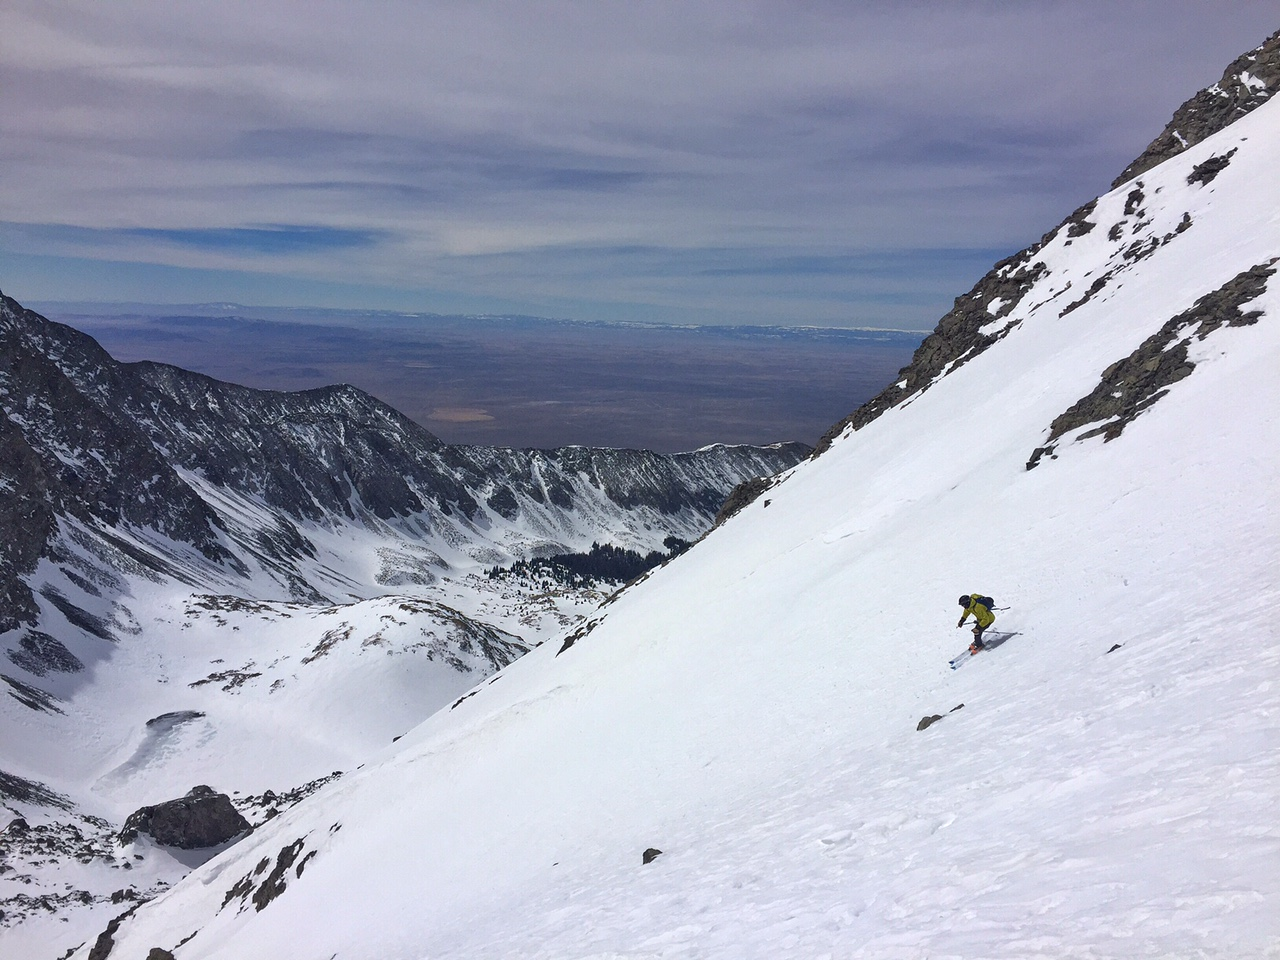 Skiing down south face colouir